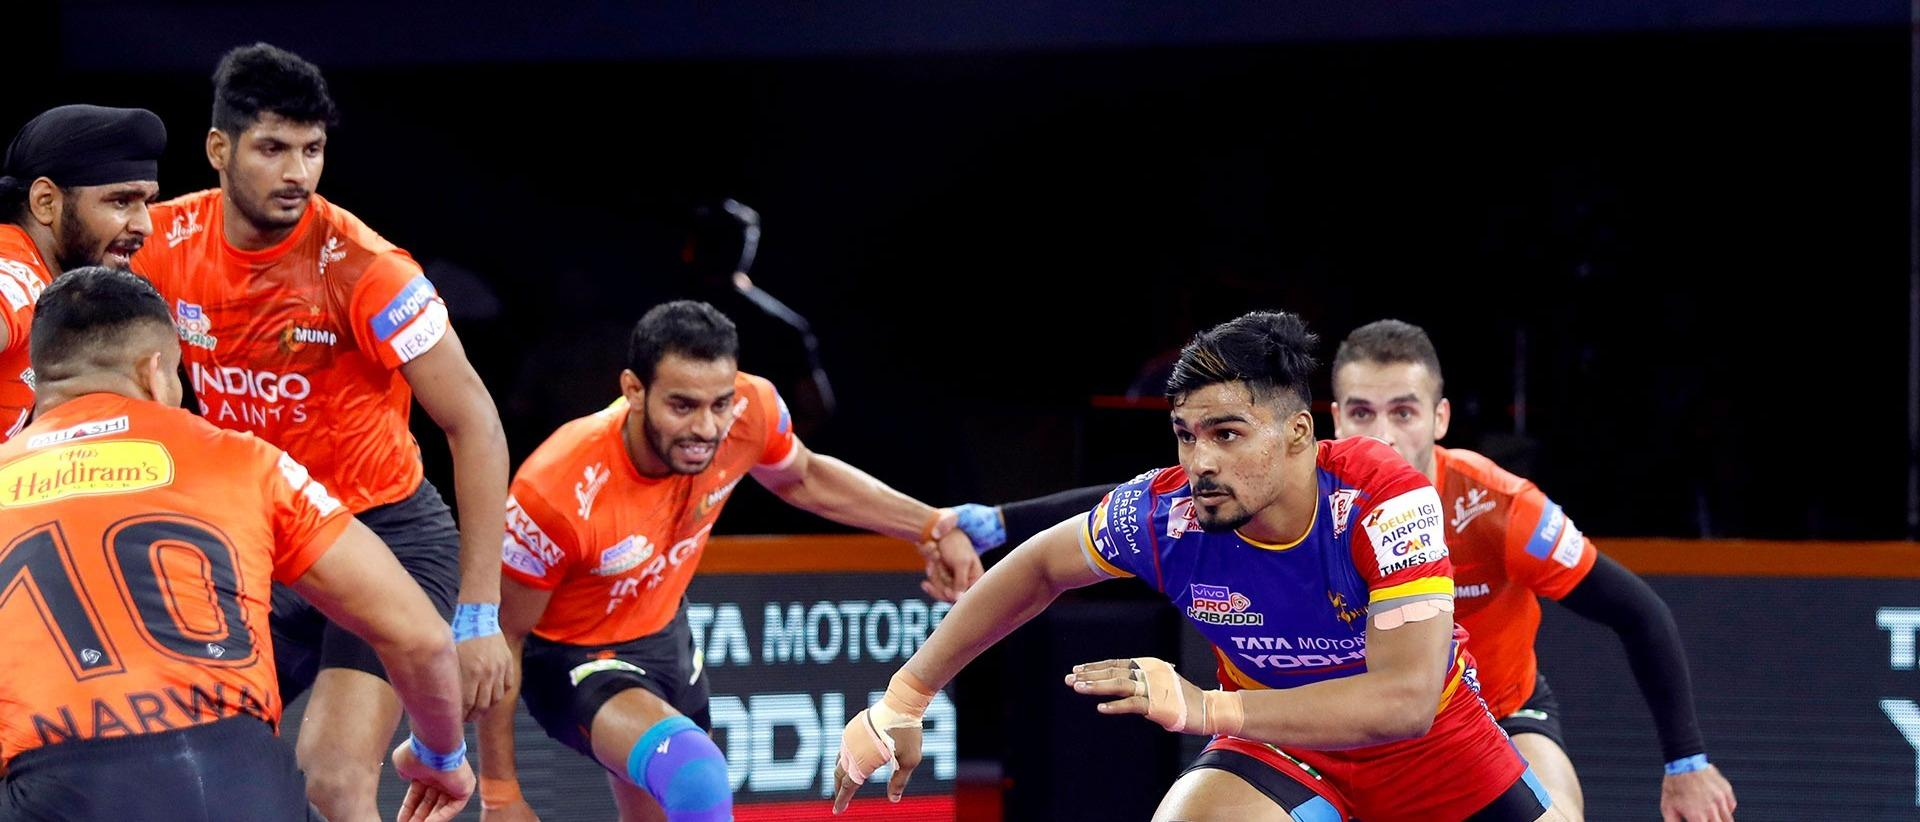 Yoddha lose to Mumba, end winning streak